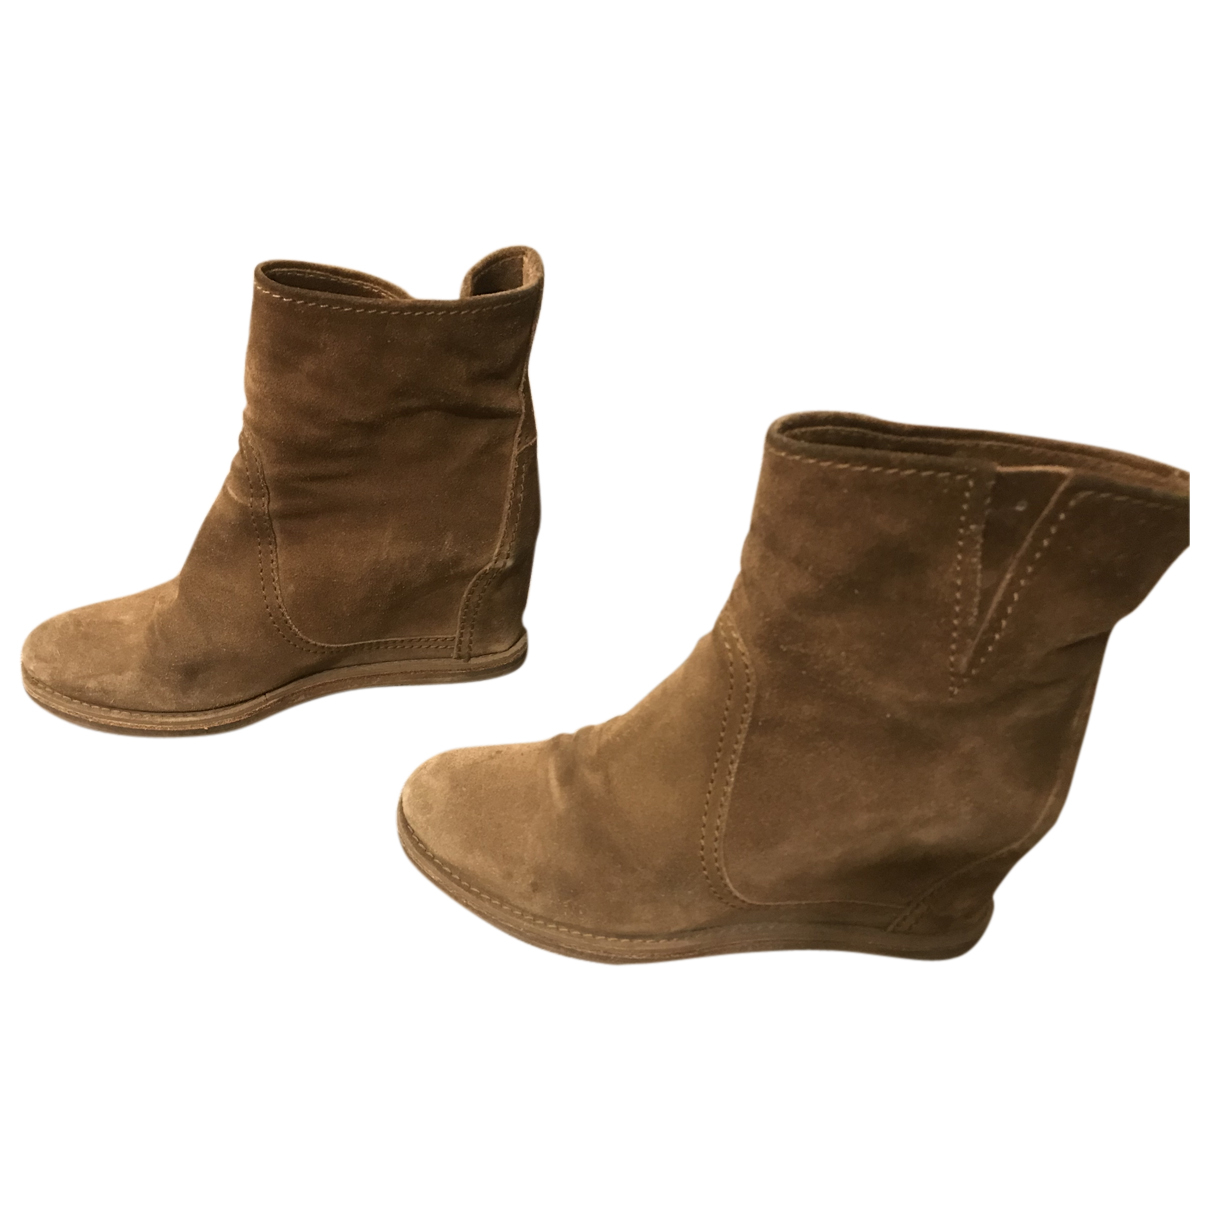 Carshoe N Camel Suede Ankle boots for Women 37 IT